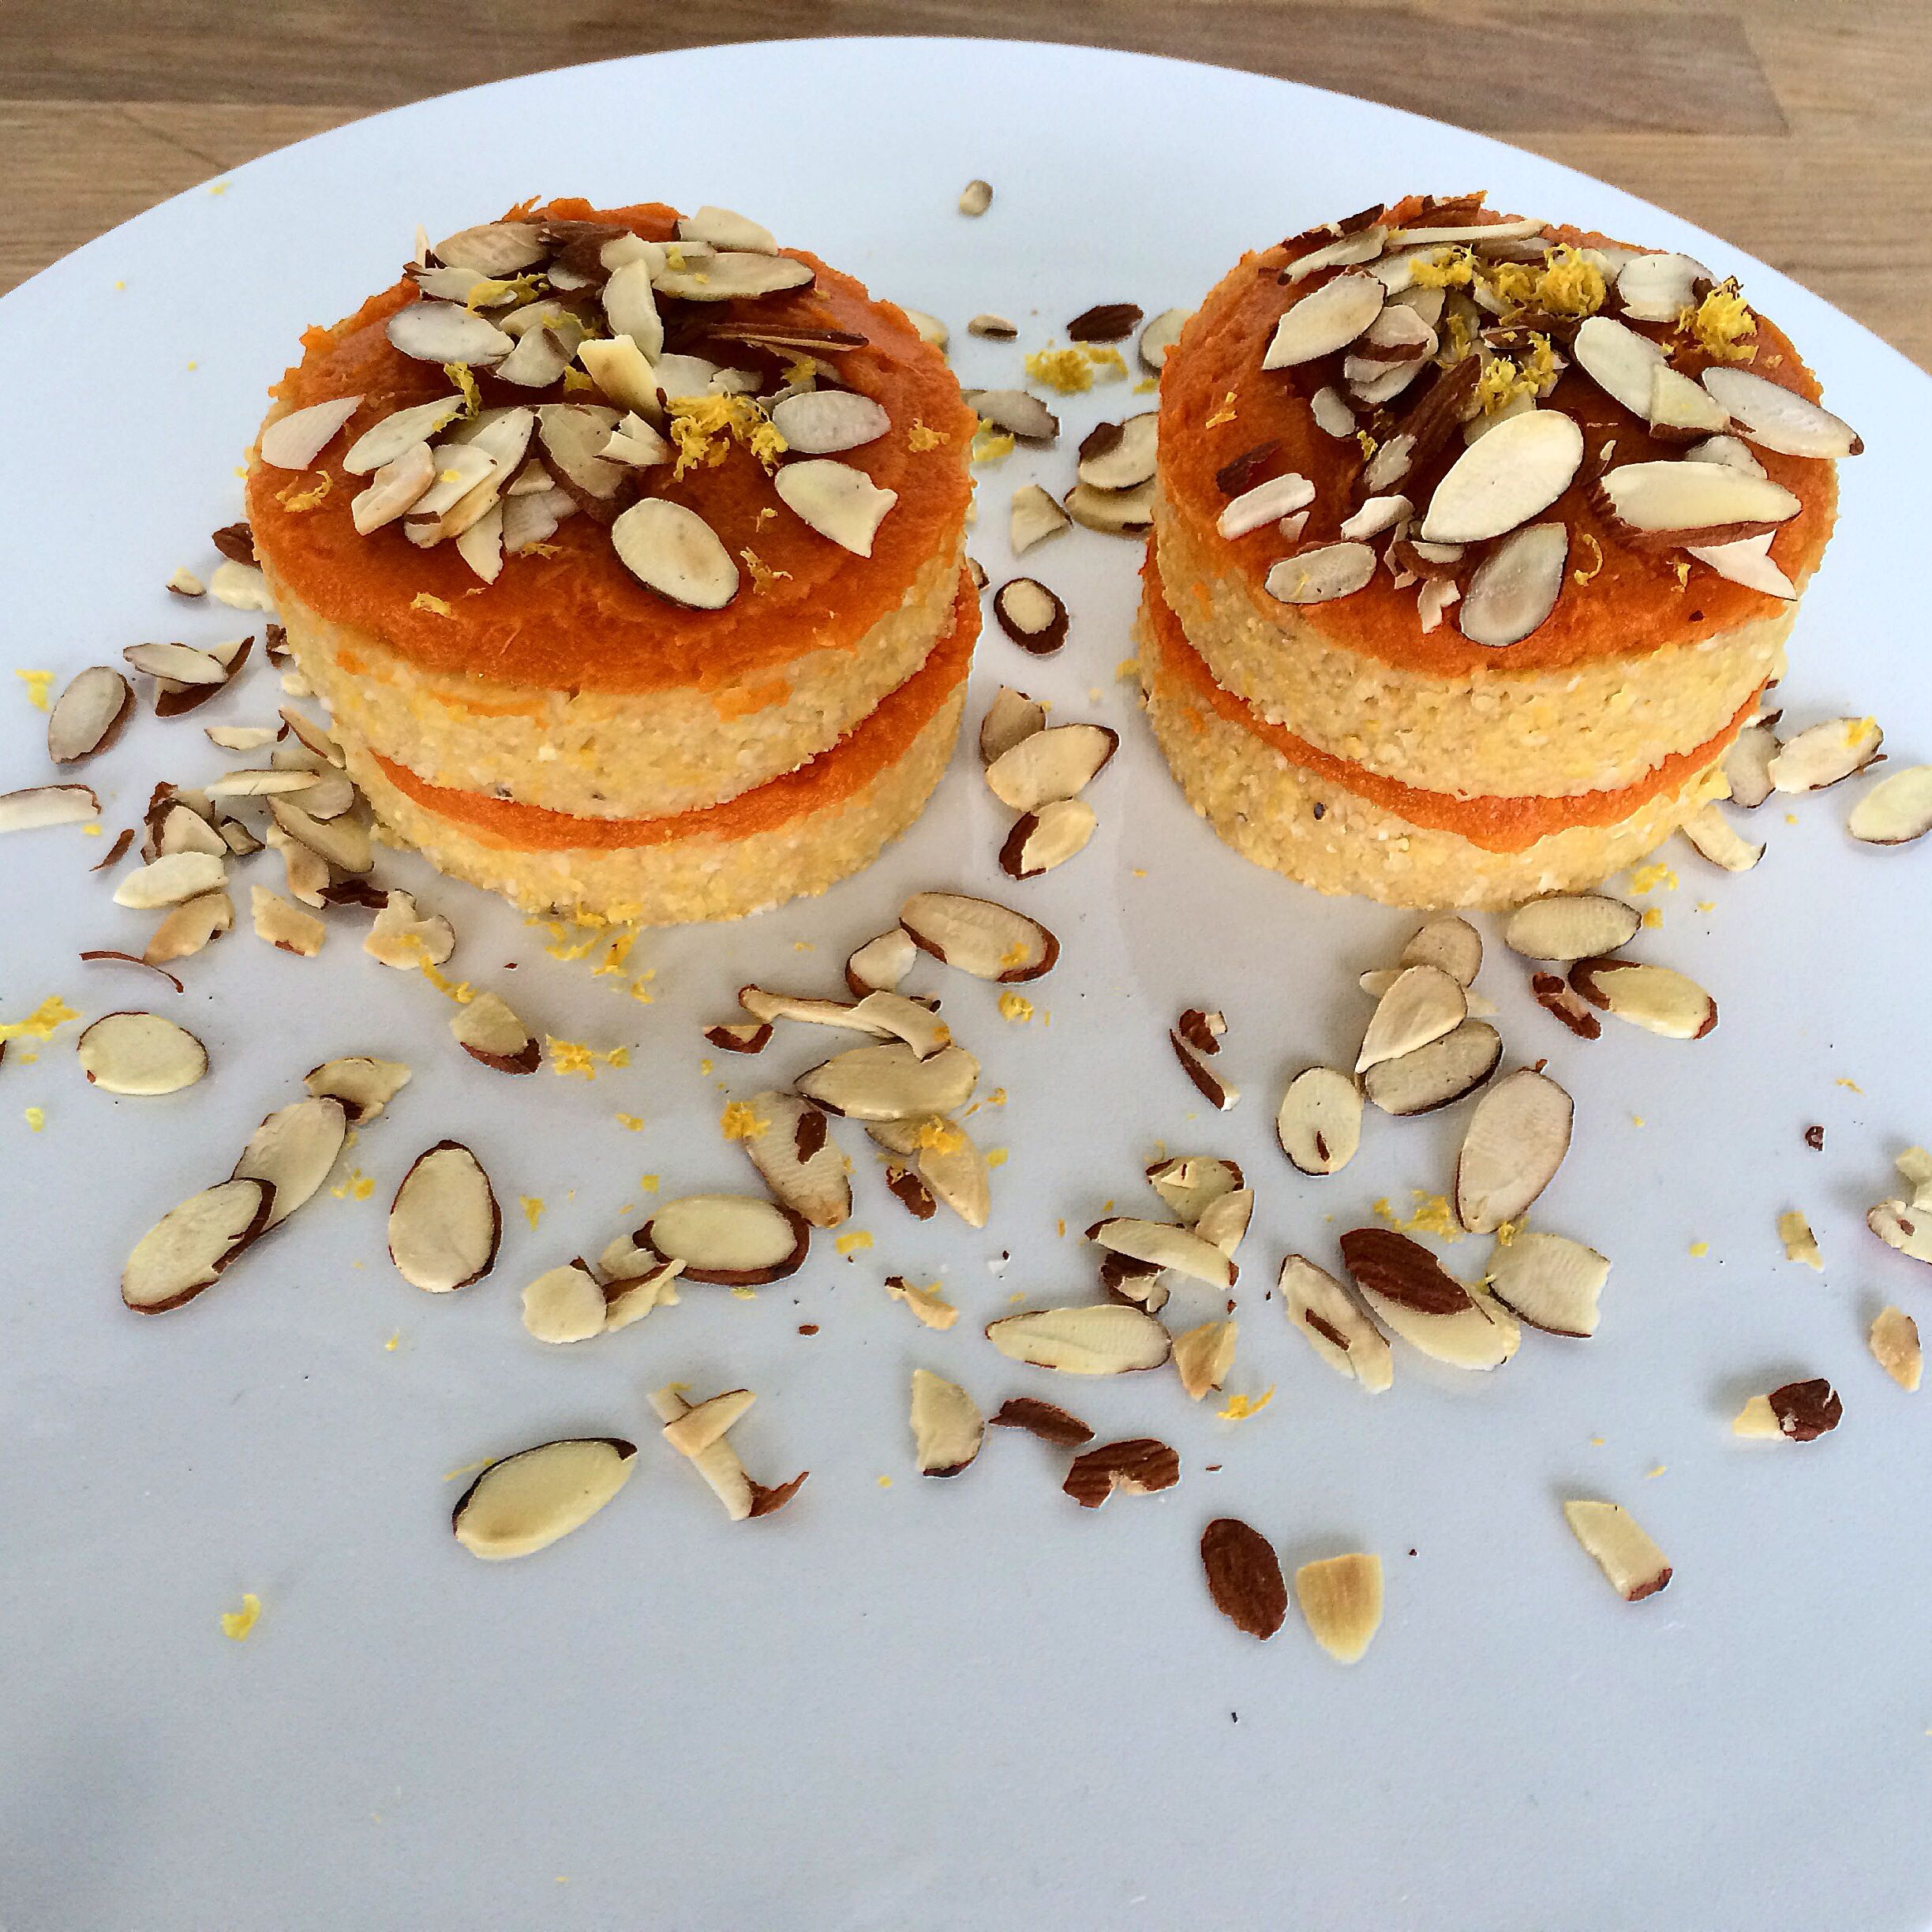 """I have even made polenta as a dessert! This was a test recipe from culinary school. Lemon-almond polenta cakes with a sweet potato """"frosting"""". A delicious recipe inspired by macrobiotic philosophy."""